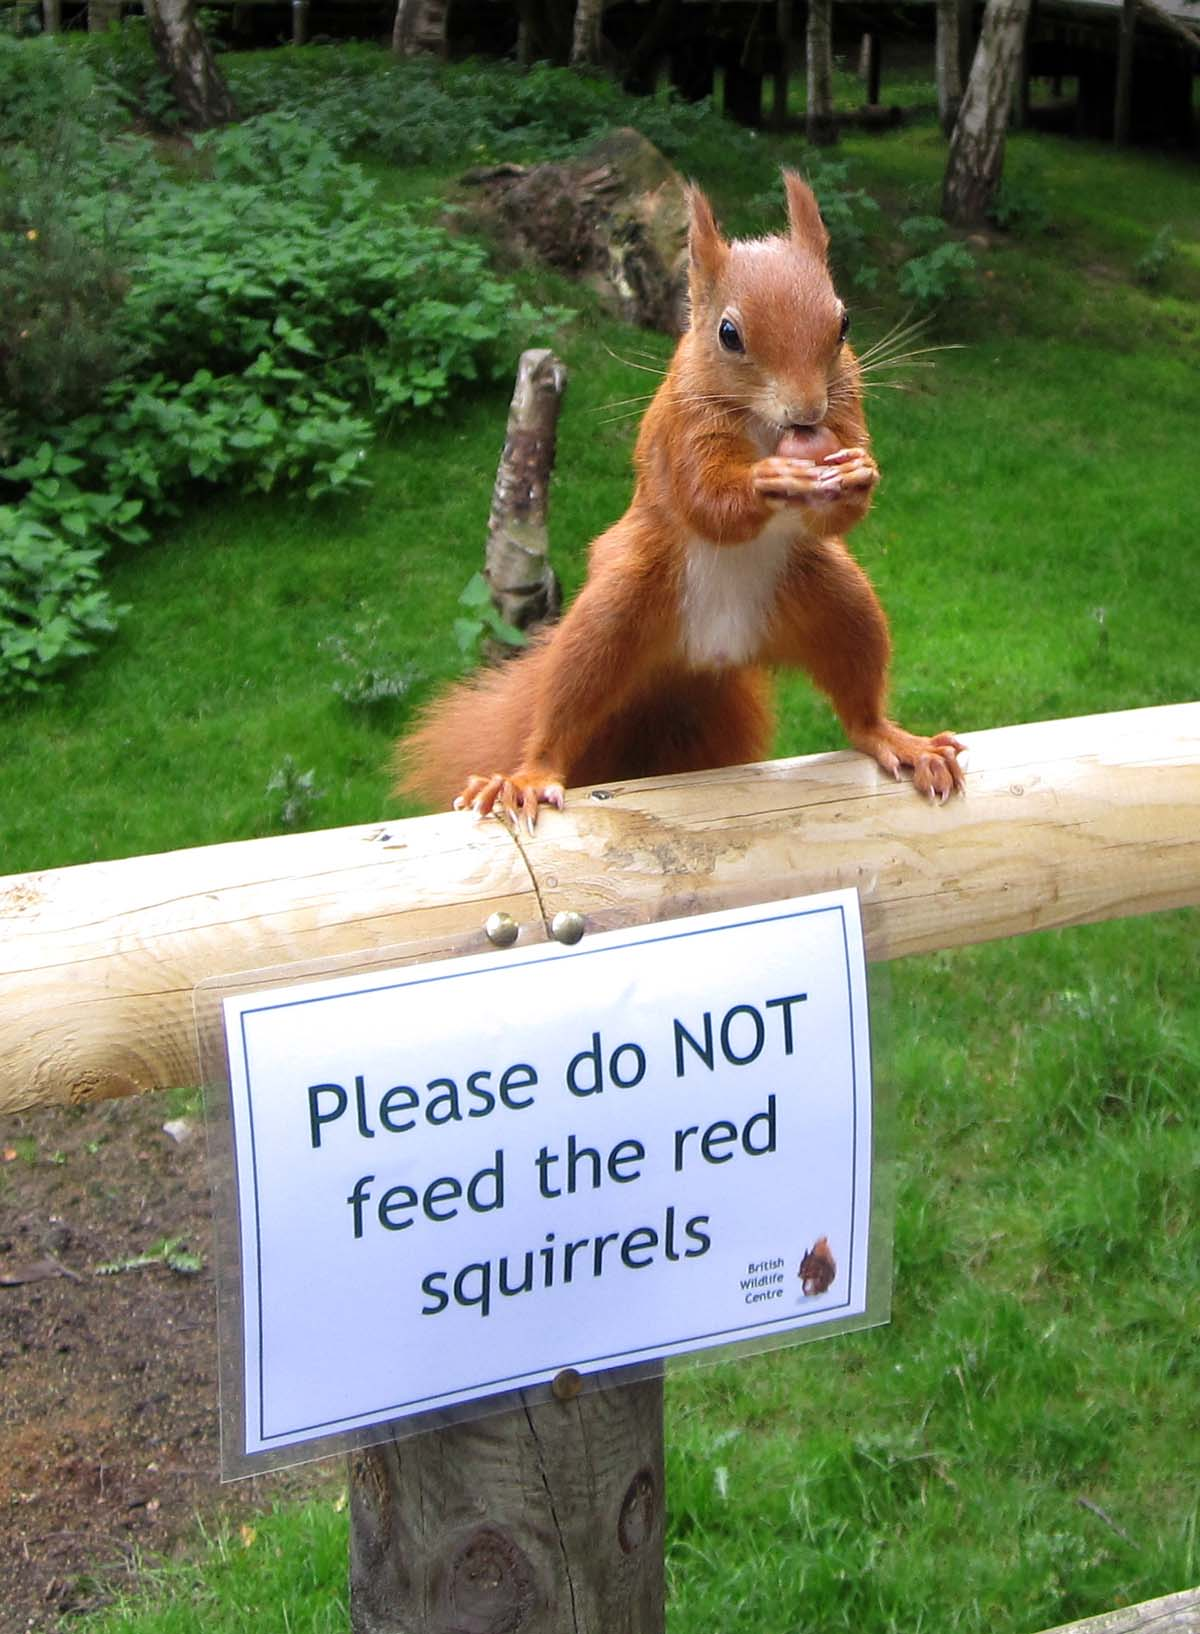 I think squirrels can't read...